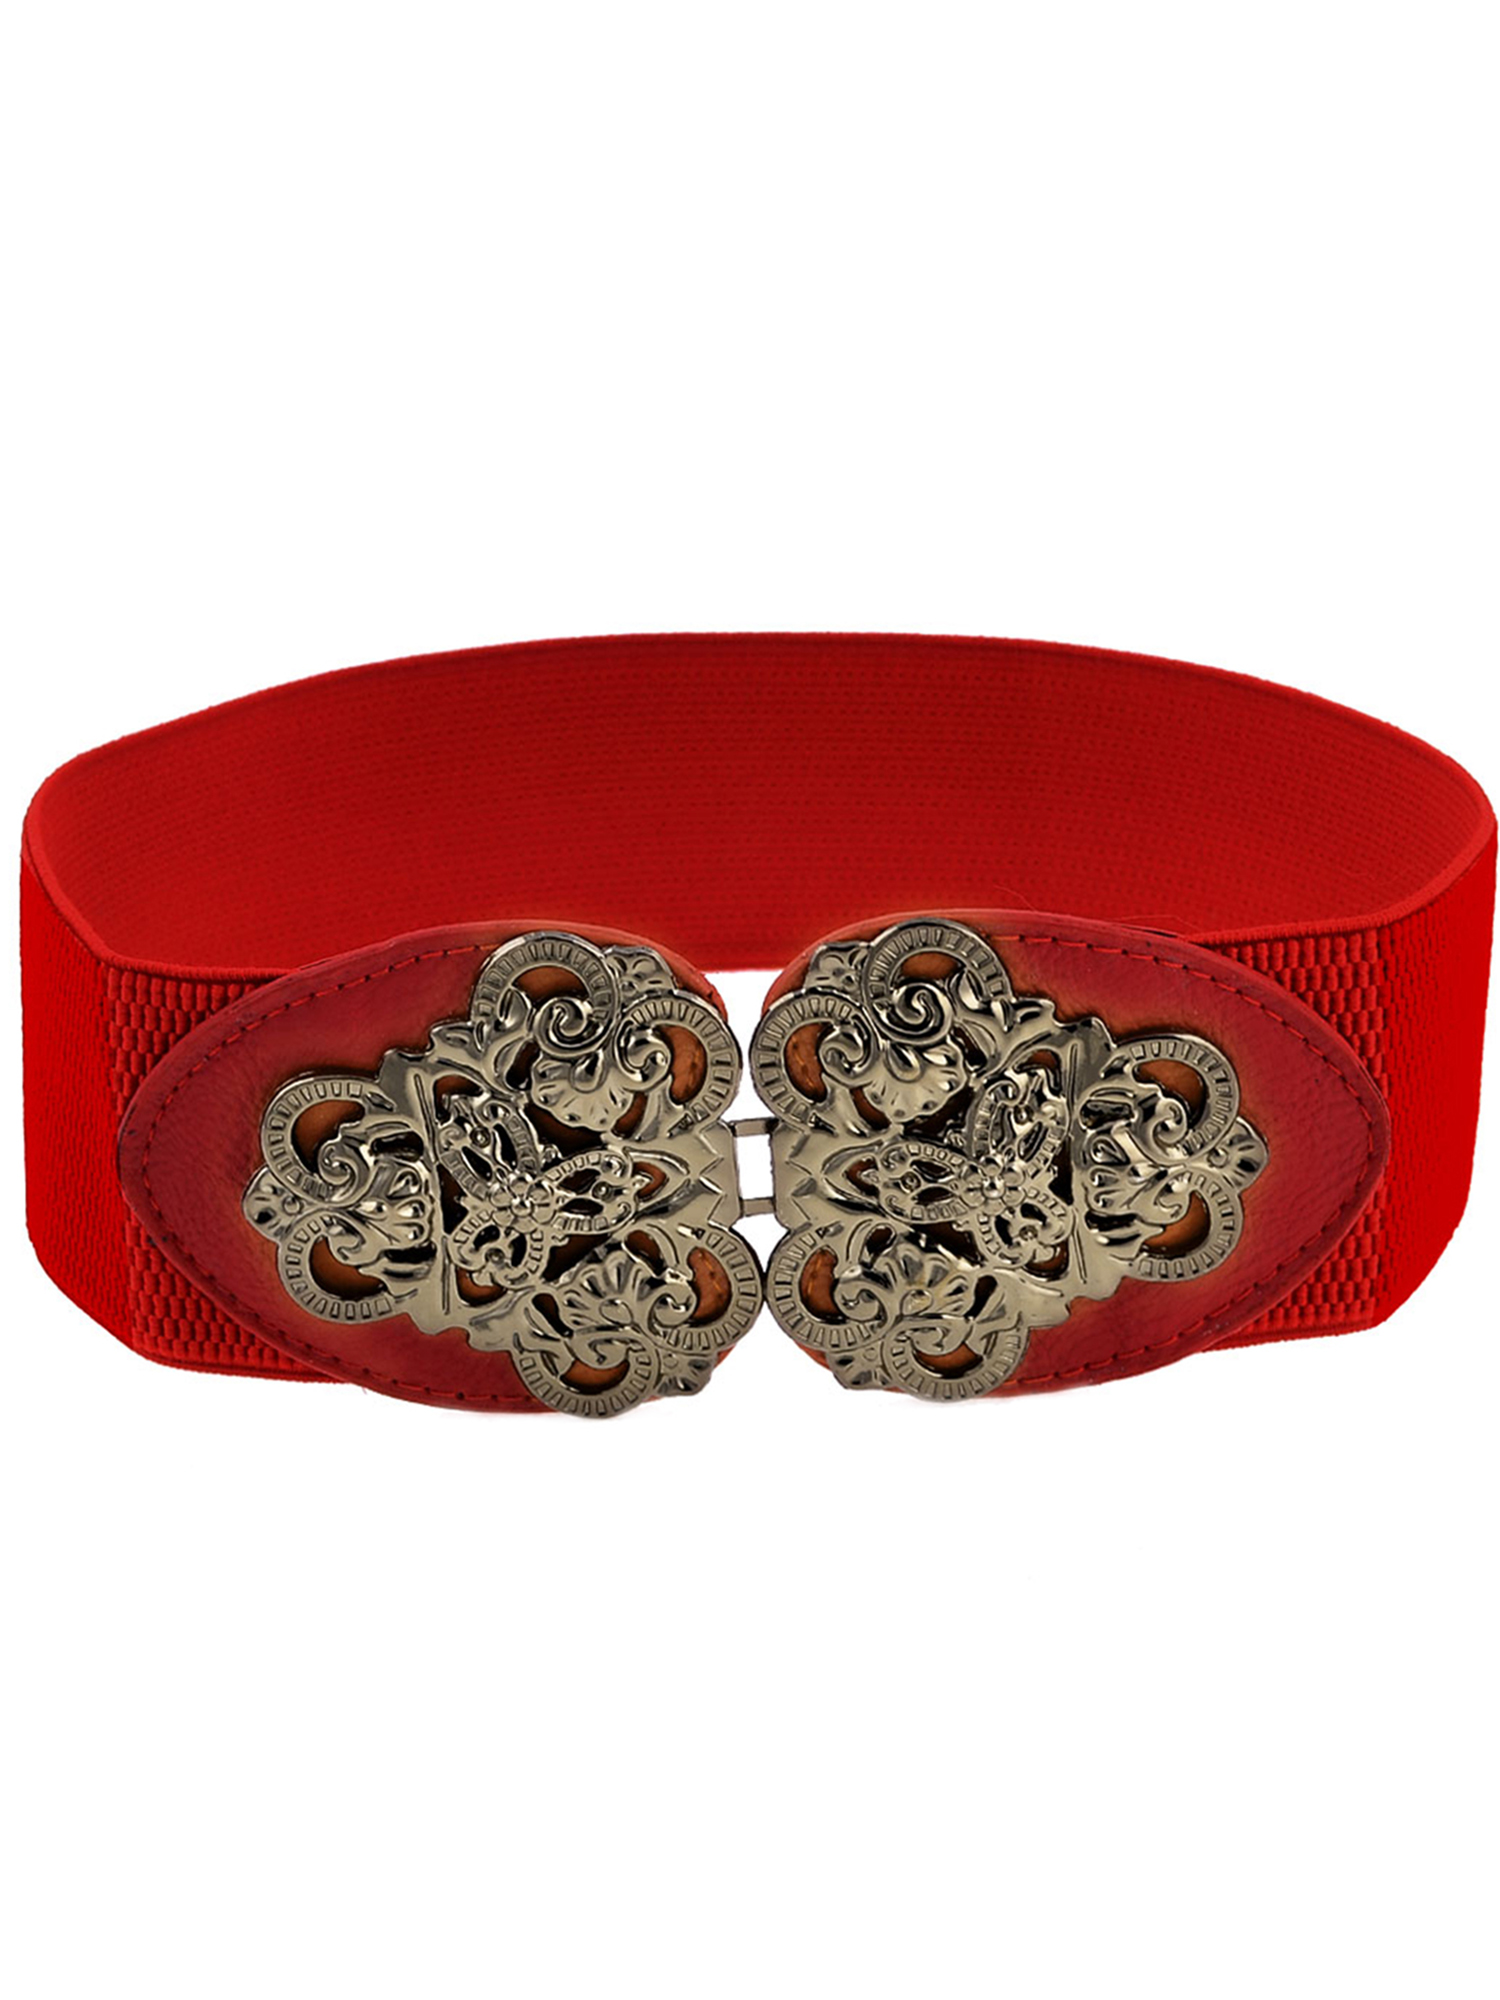 Red Elastic Stretch Band Lychee Print Dressing Blouse Belt for Girls